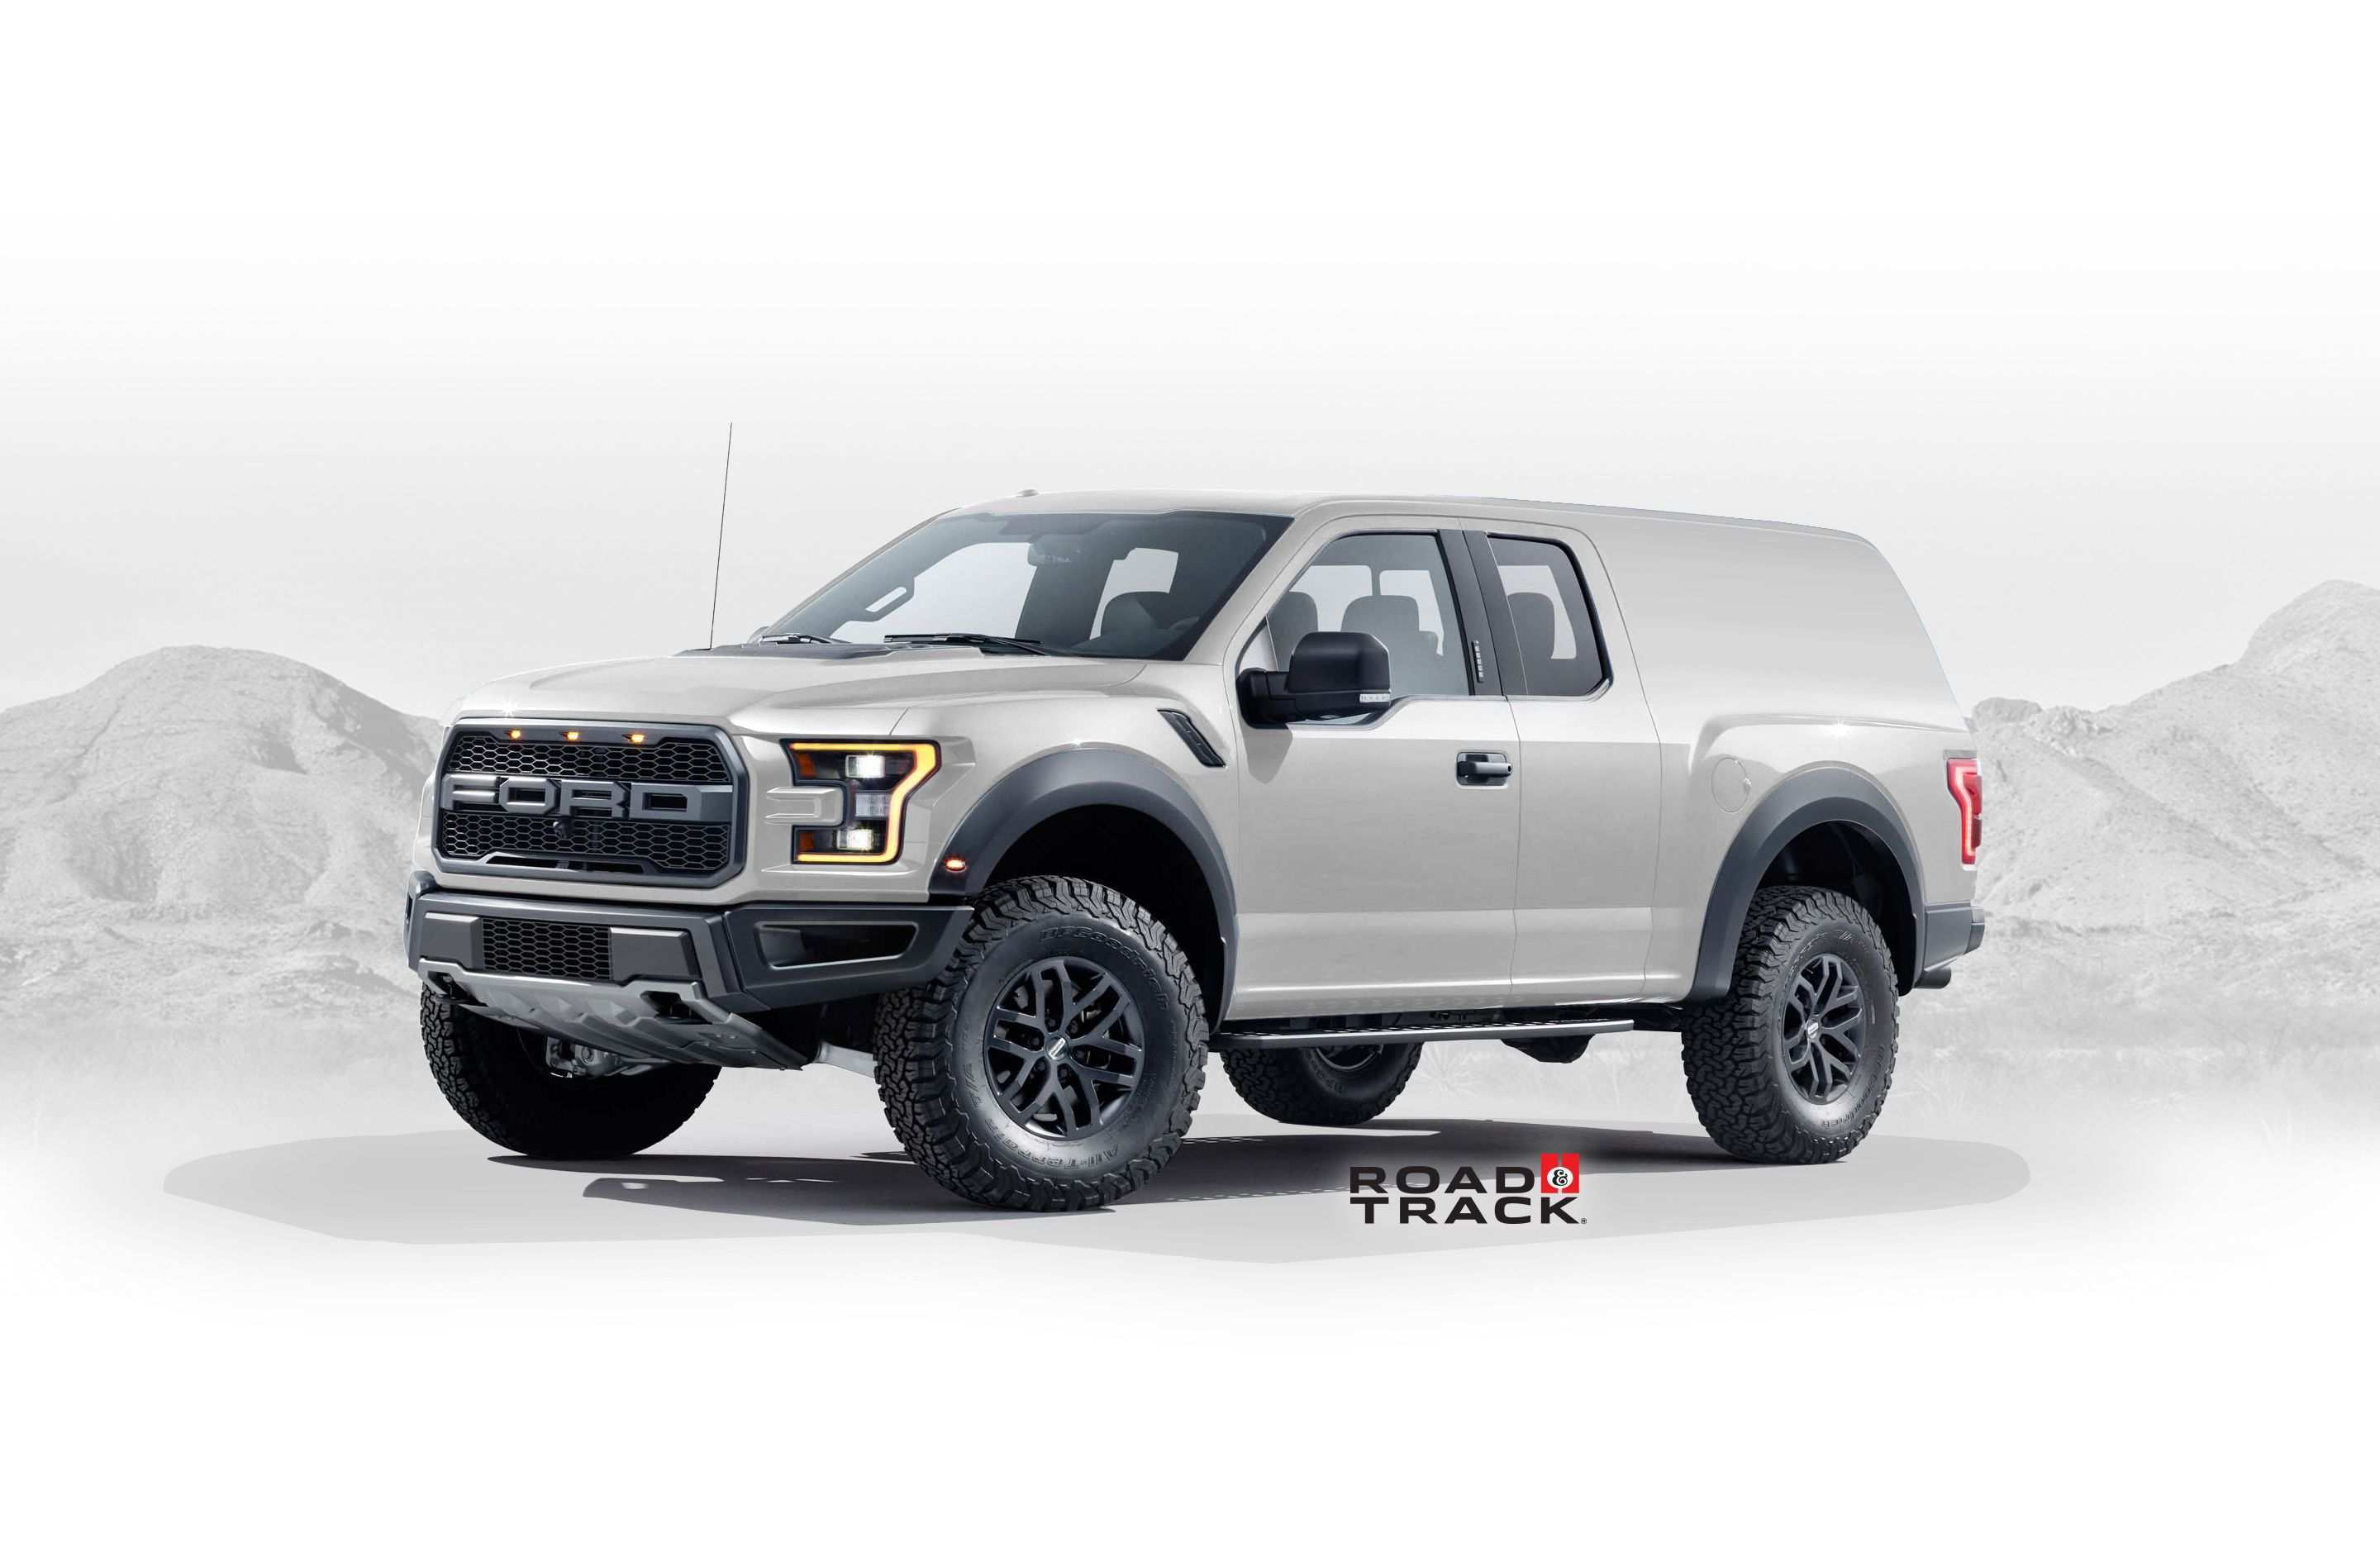 64 Gallery of 2020 Ford Bronco Design Reviews for 2020 Ford Bronco Design